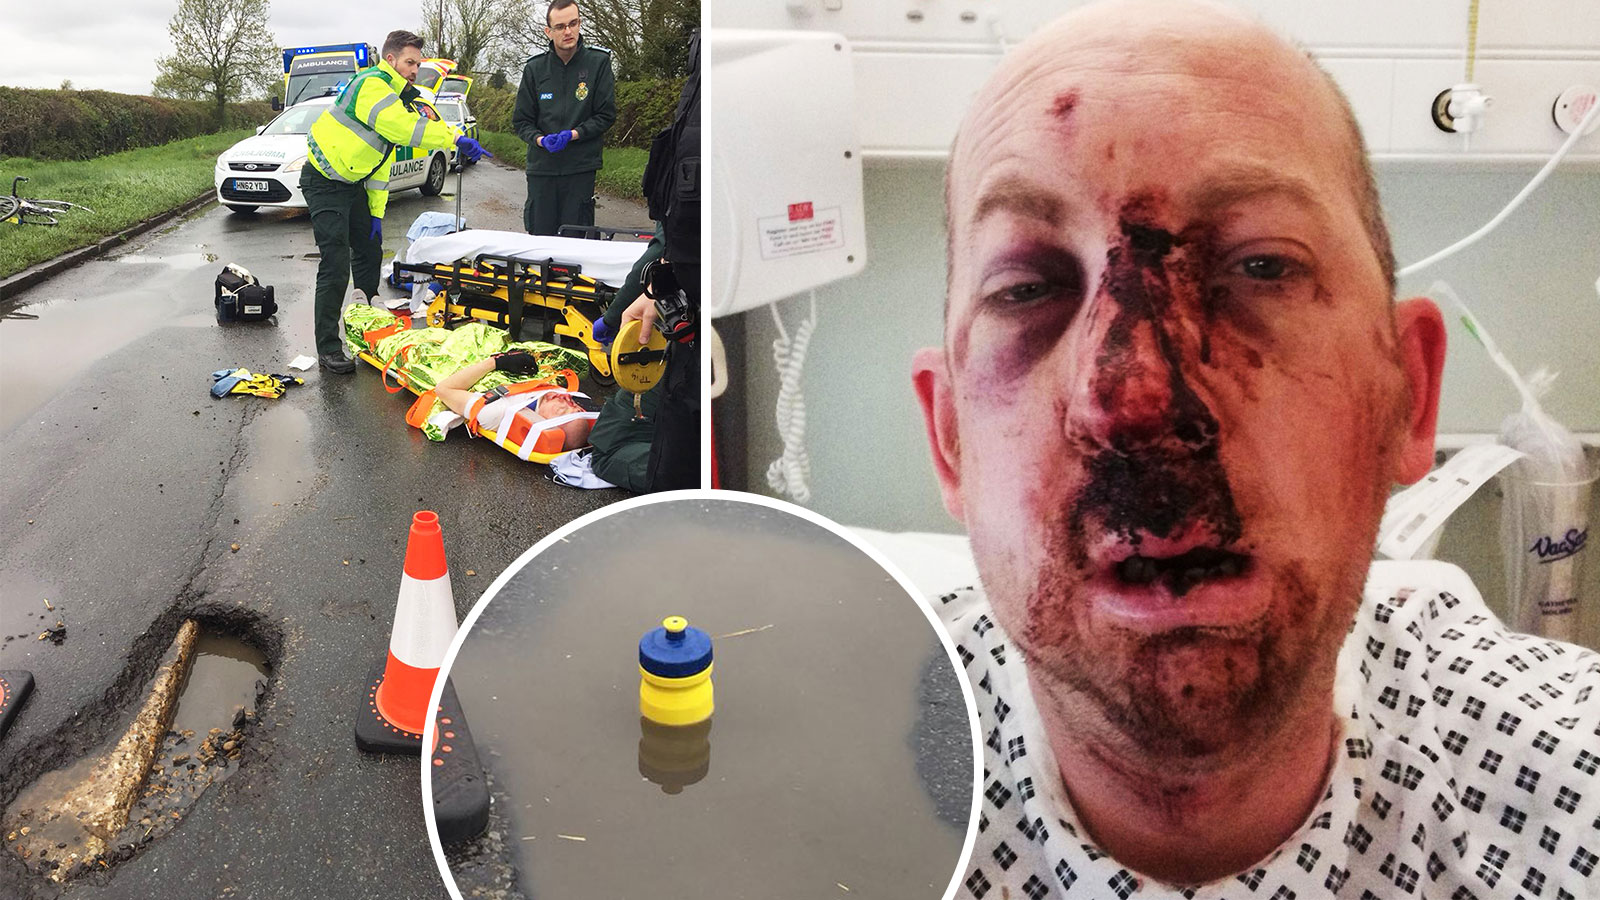 The 9in pothole could not be seen as it was filled with water. Simon Moss was thrown off his bike and landed on his face